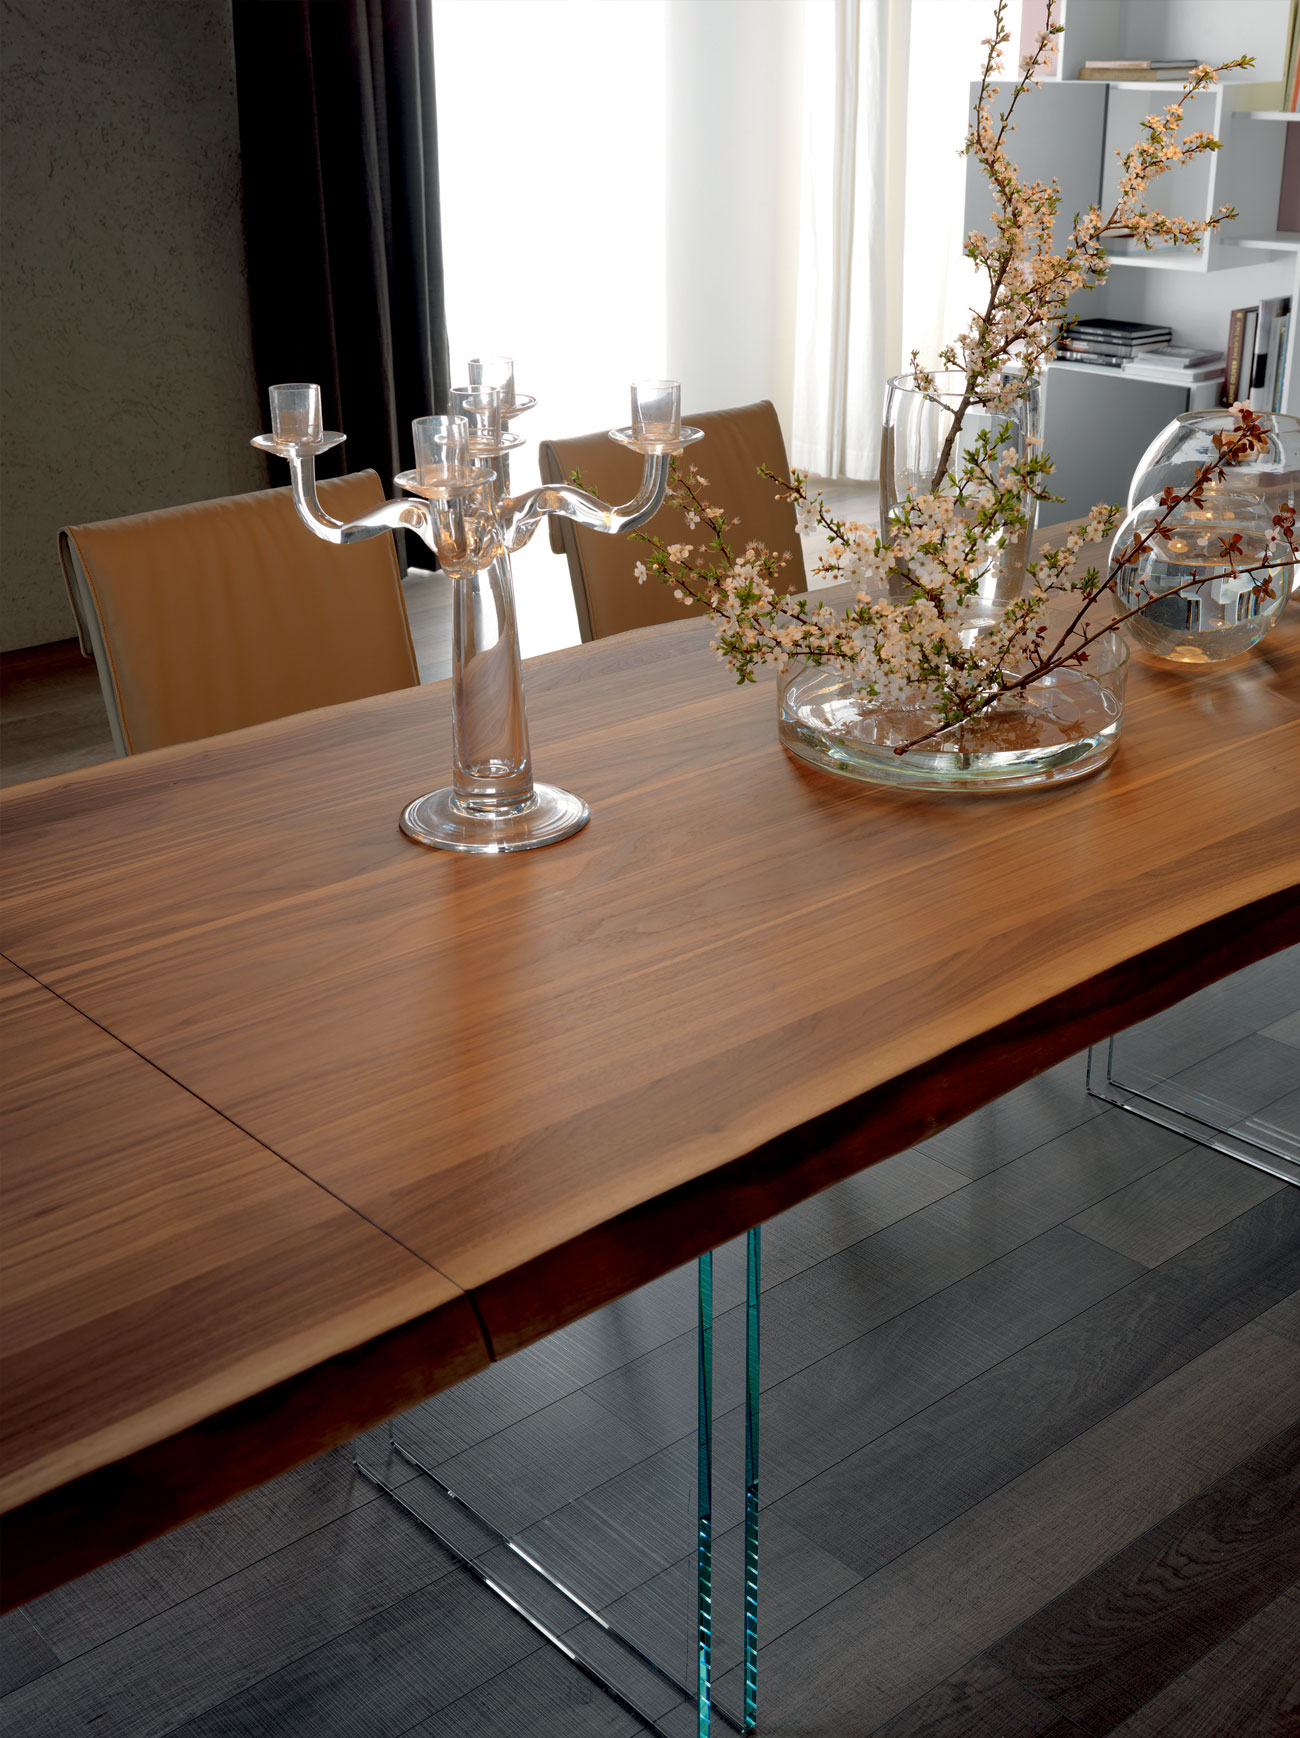 Ikon table by Cattelan Italia